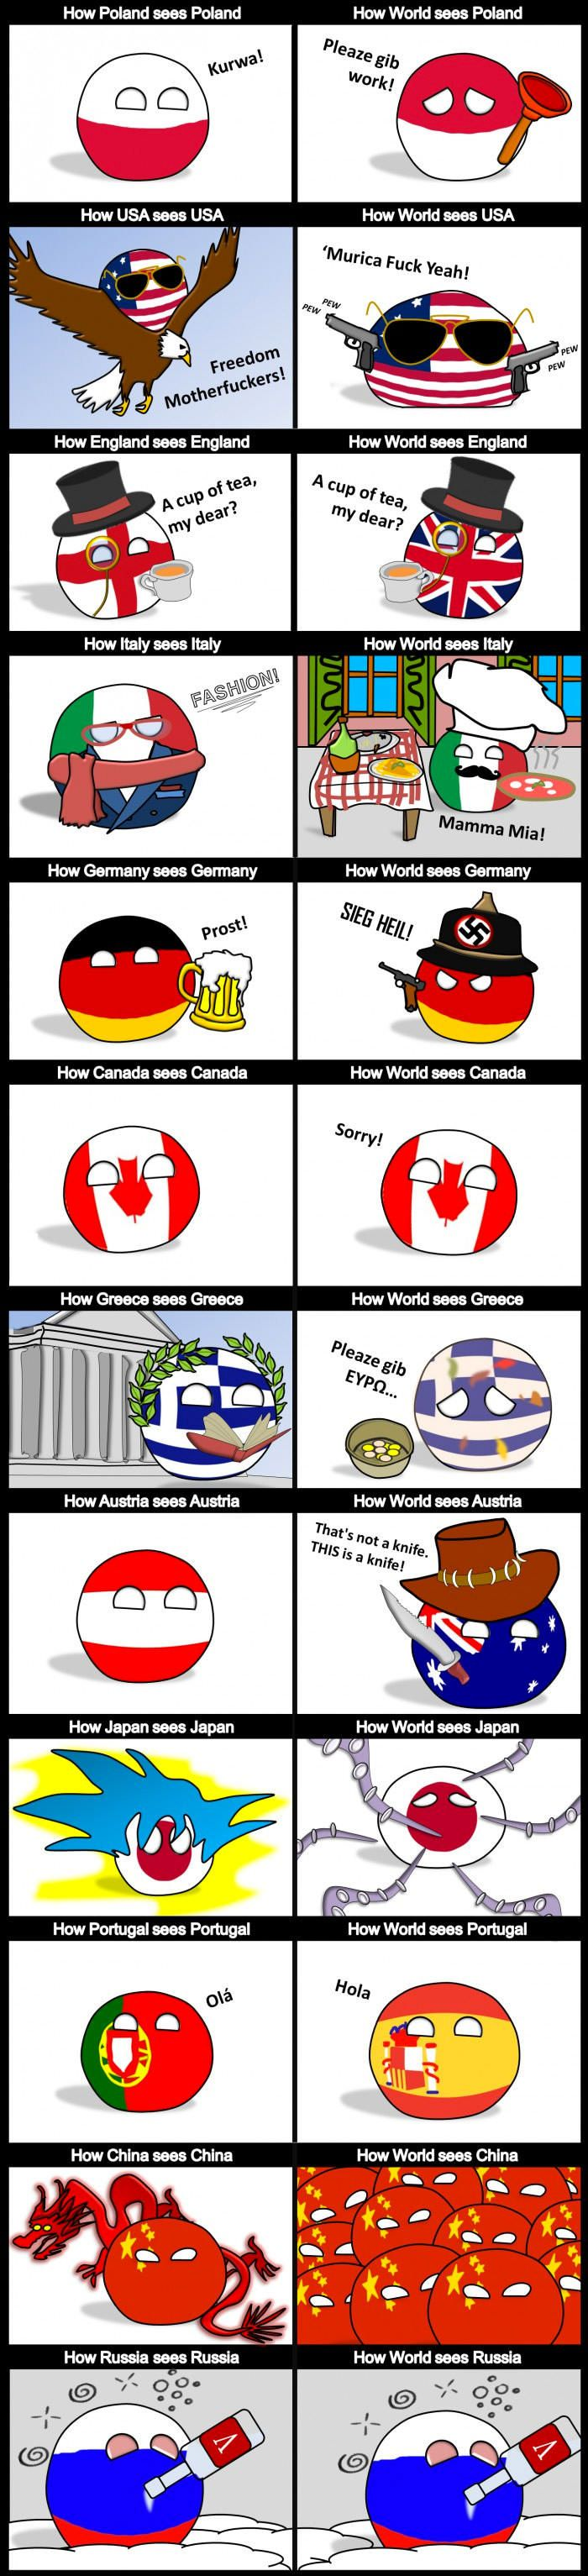 Countryballs: expectation vs. reality